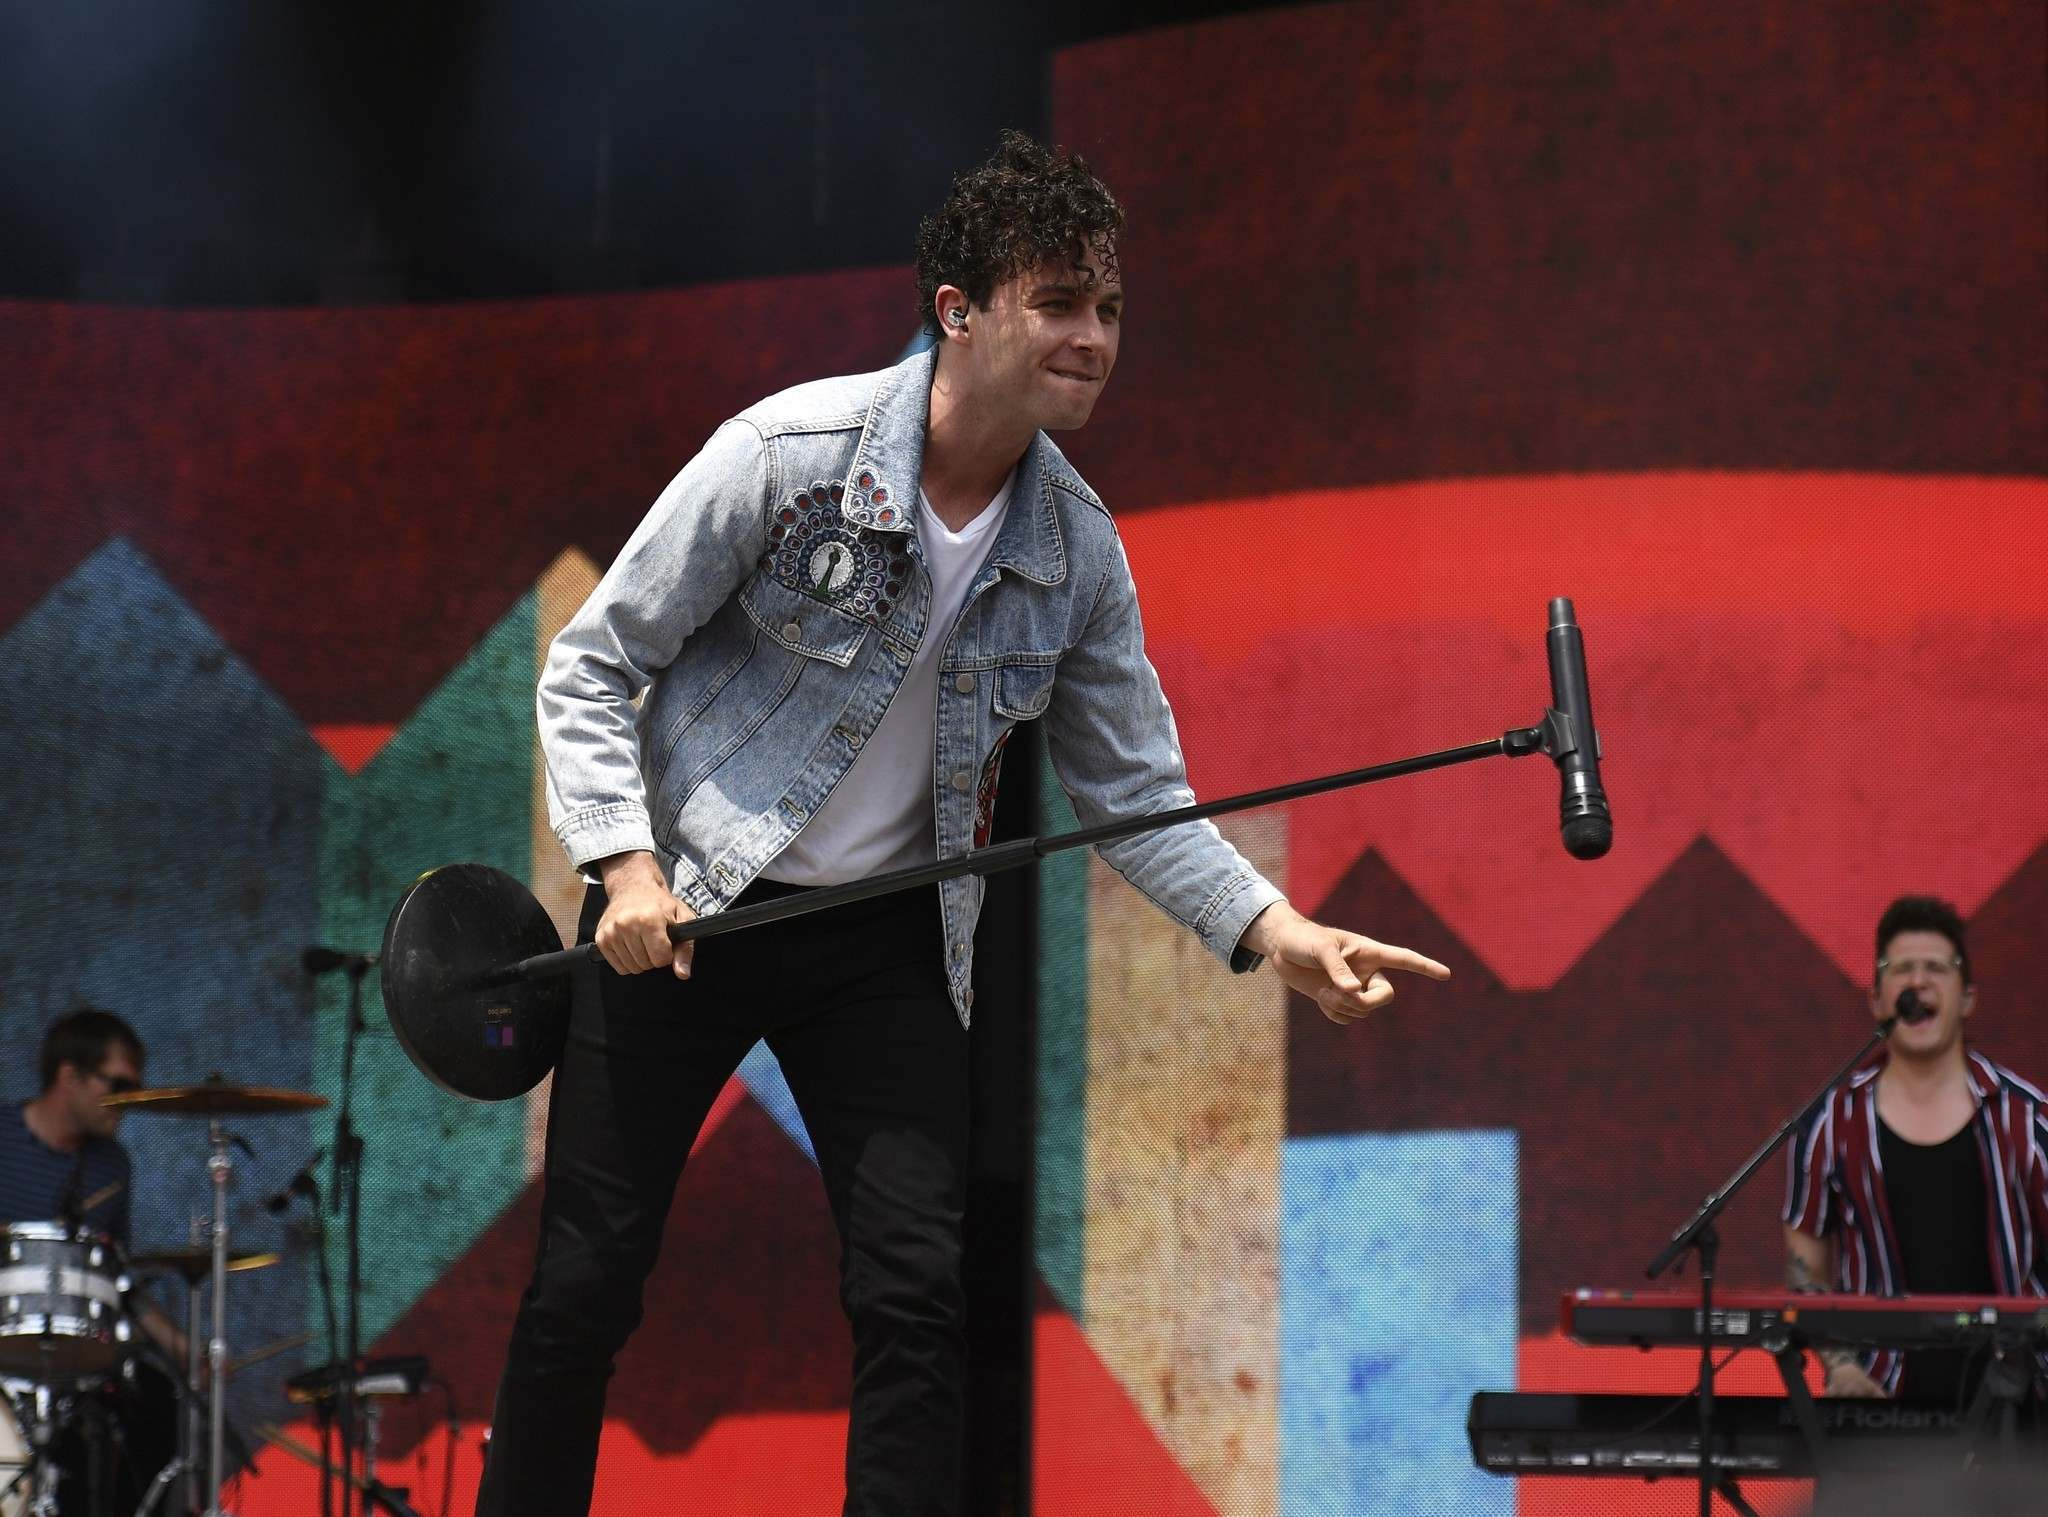 The Arkells were invited to perform on Parliament Hill in Ottawa during Canada Day celebrations last year. (Justin Tang / The Canadian Press files)